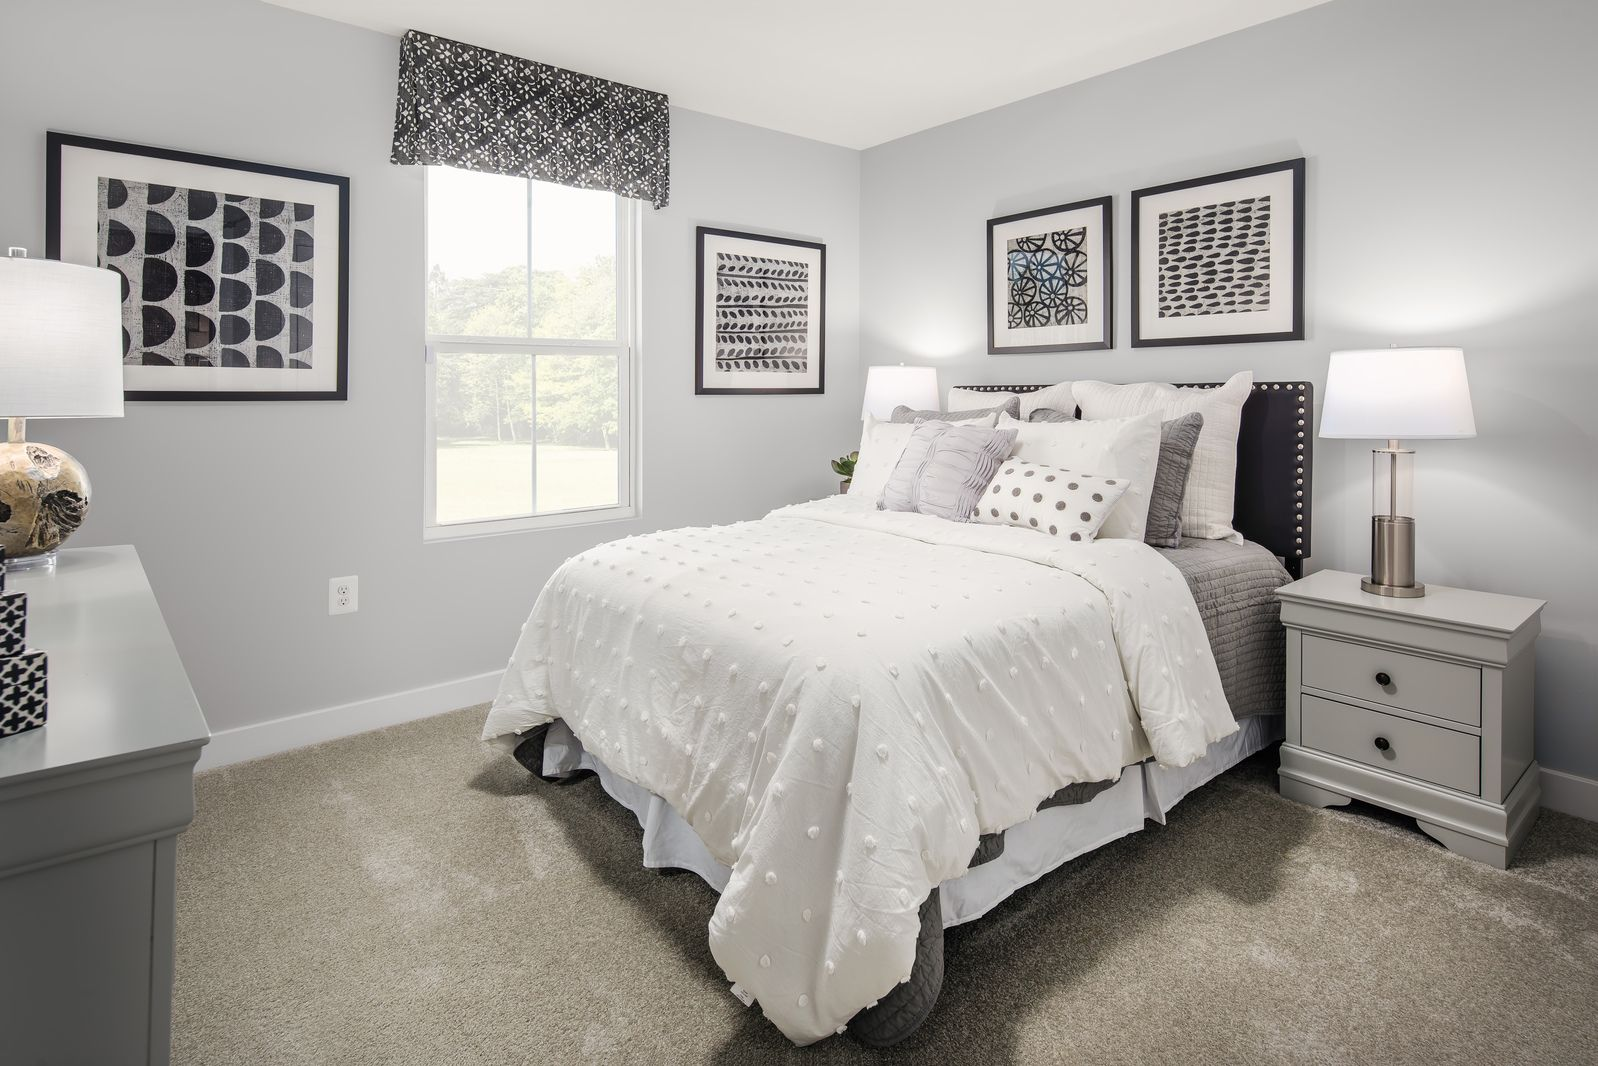 Bedroom featured in the Grand Bahama By Ryan Homes in Akron, OH